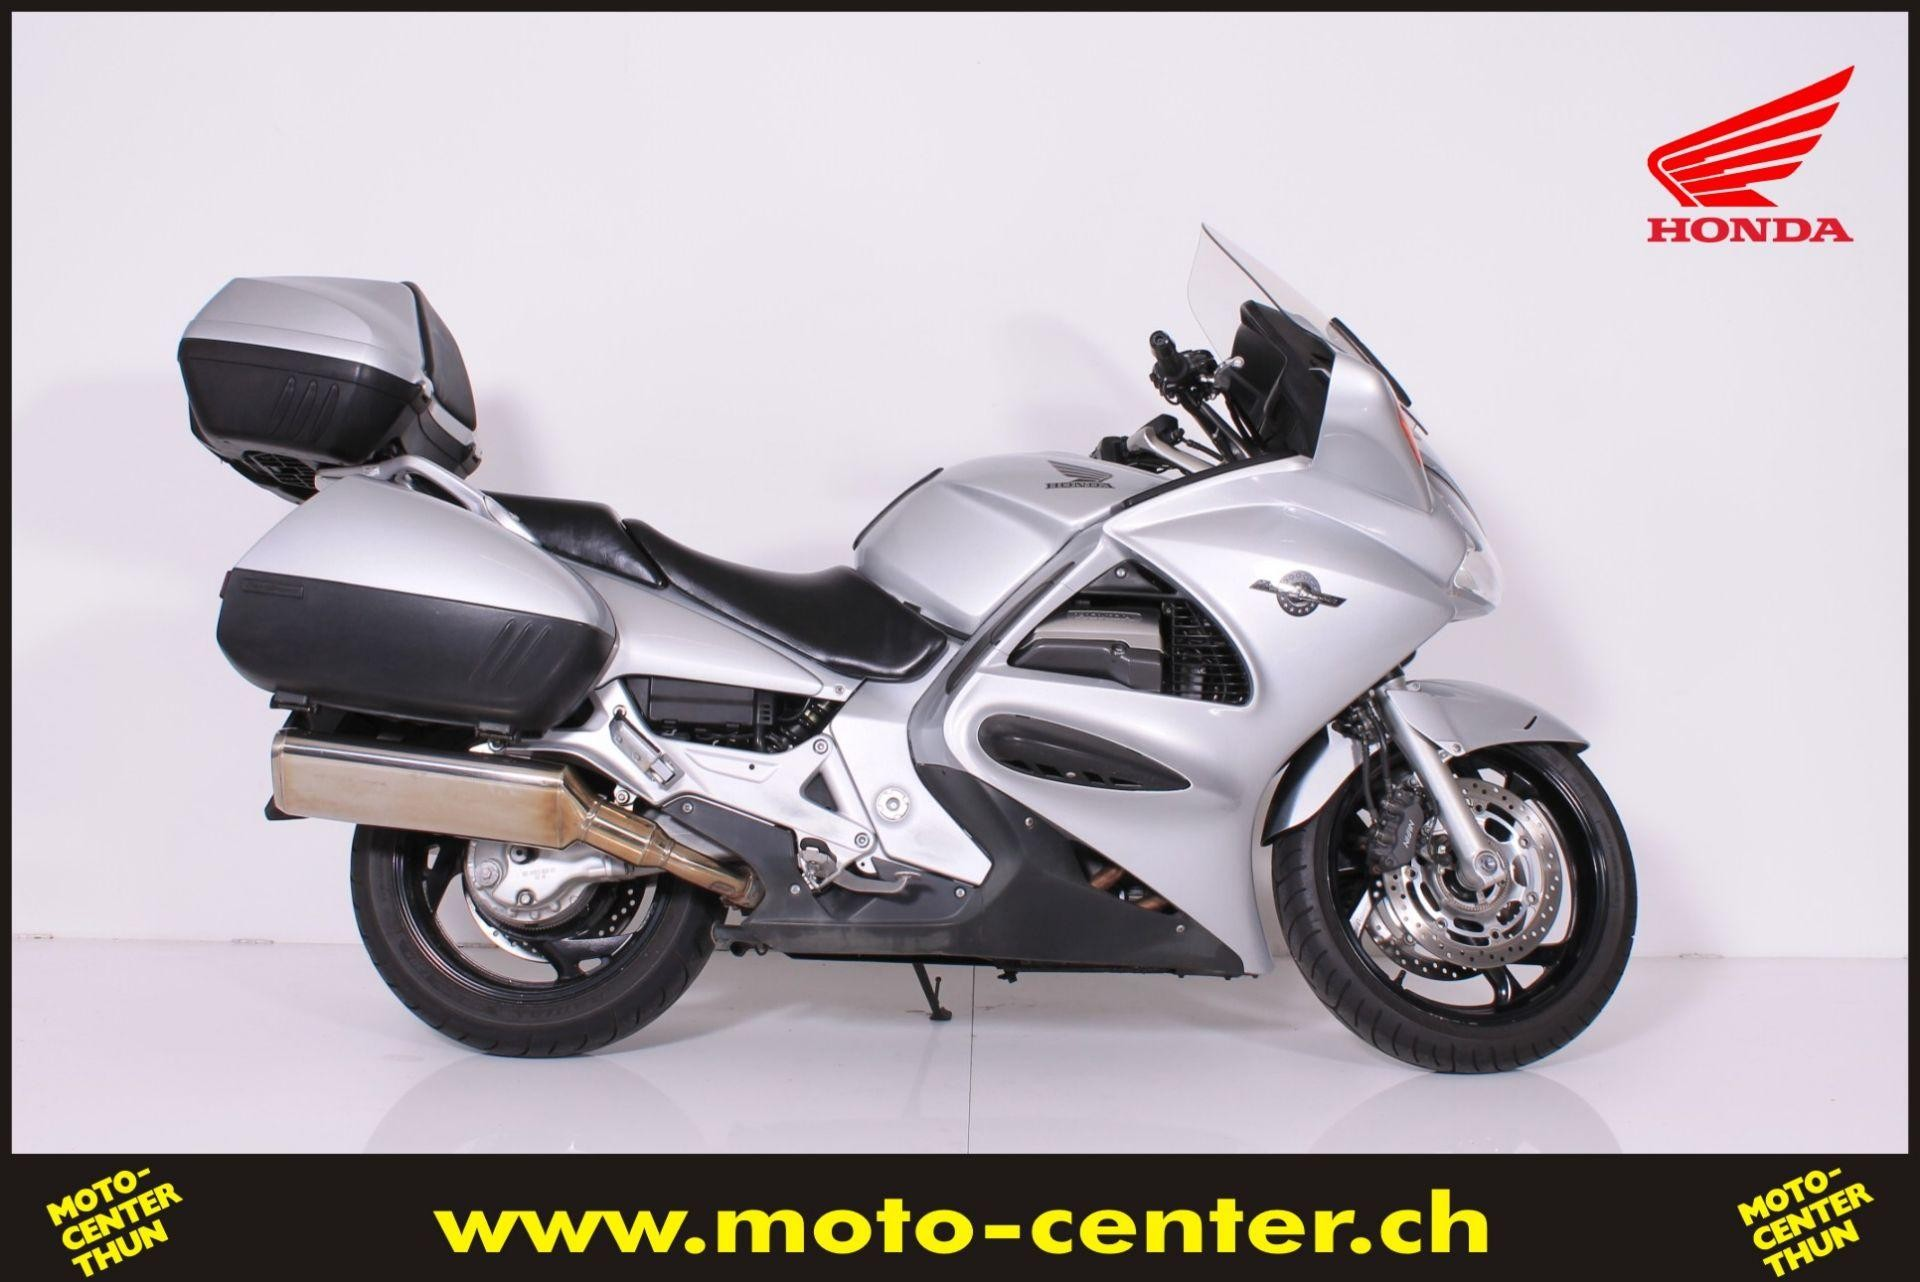 honda st 1300 a pan european abs moto center thun steffisburg occasion. Black Bedroom Furniture Sets. Home Design Ideas